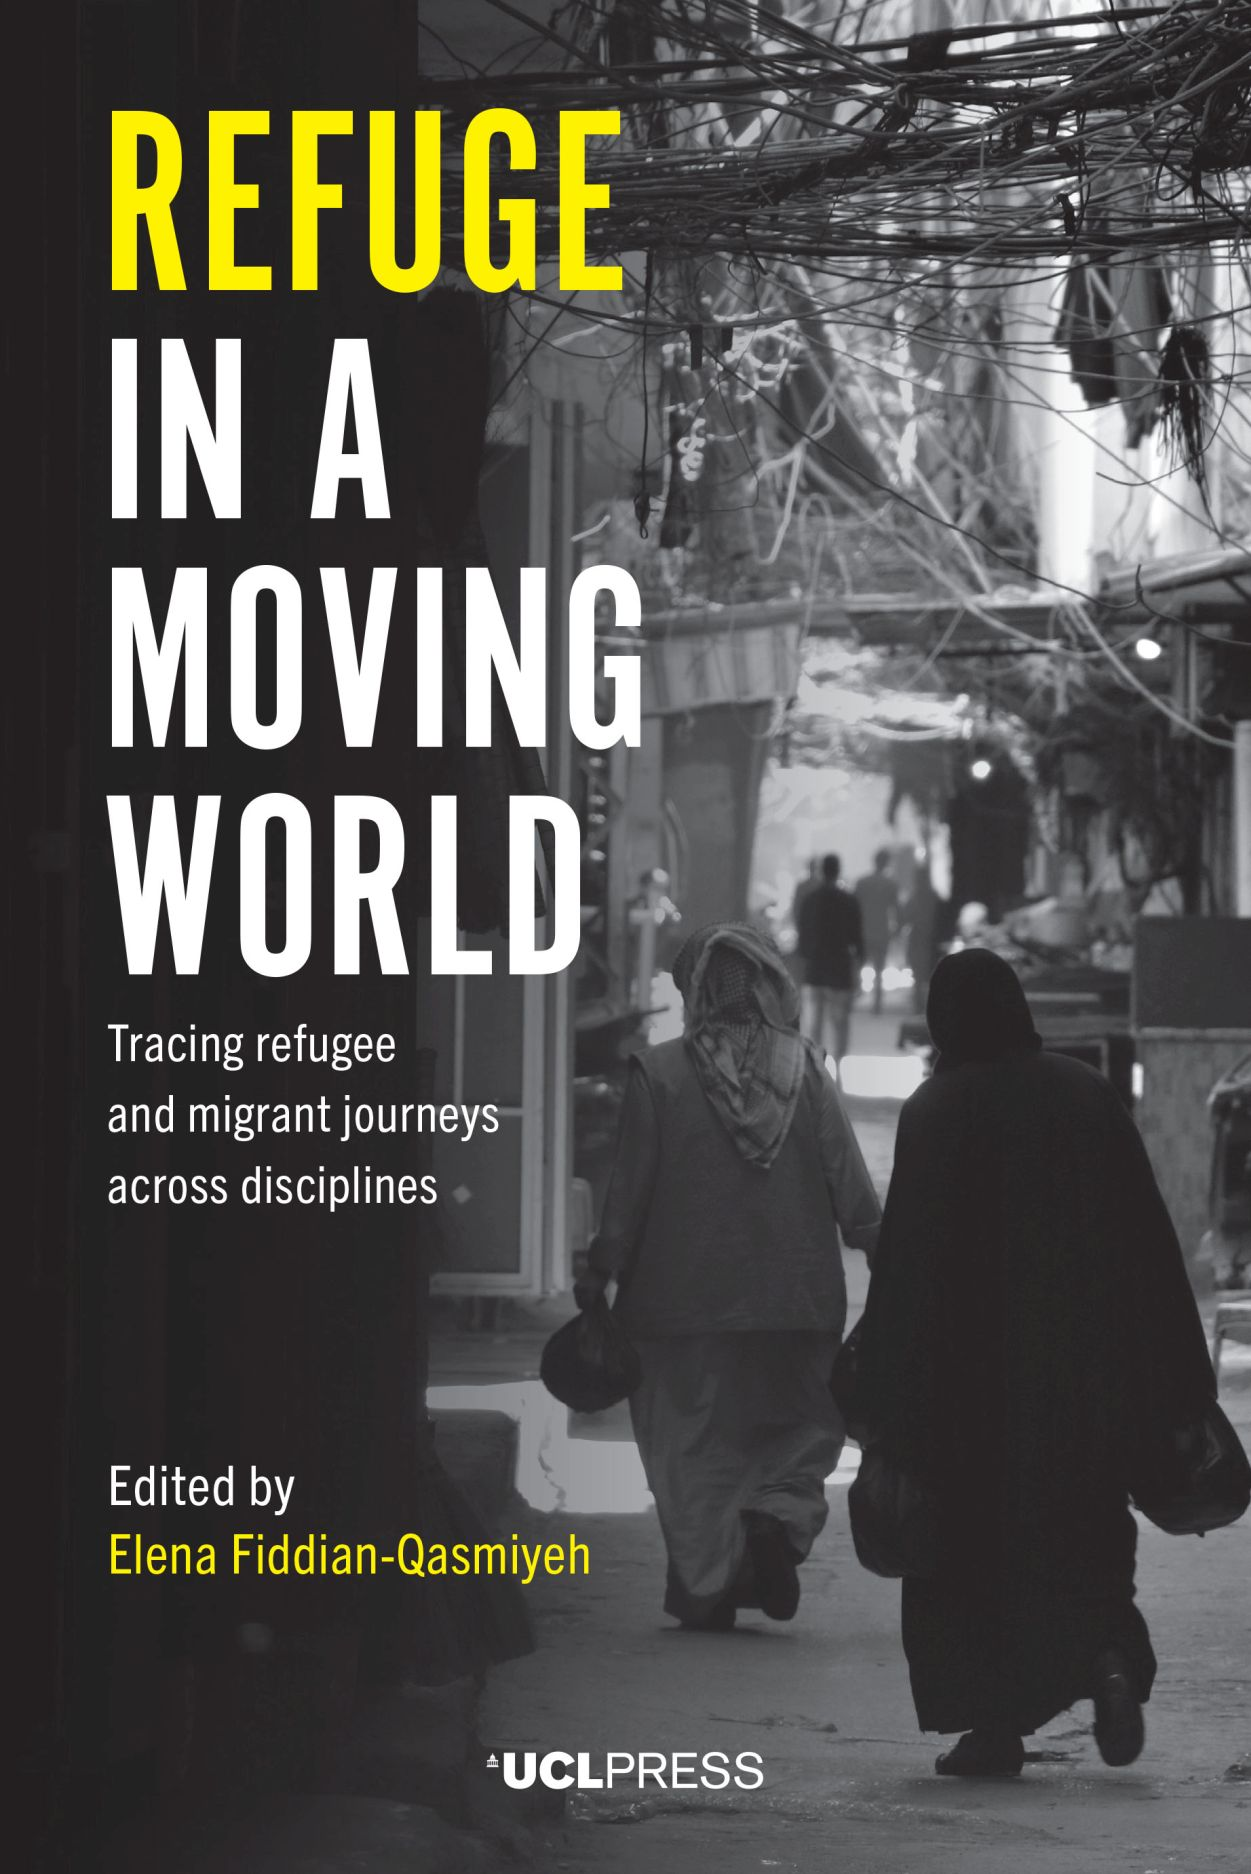 Refuge in a Moving World: Tracing Refugee and Migrant Journeys Across Disciplines